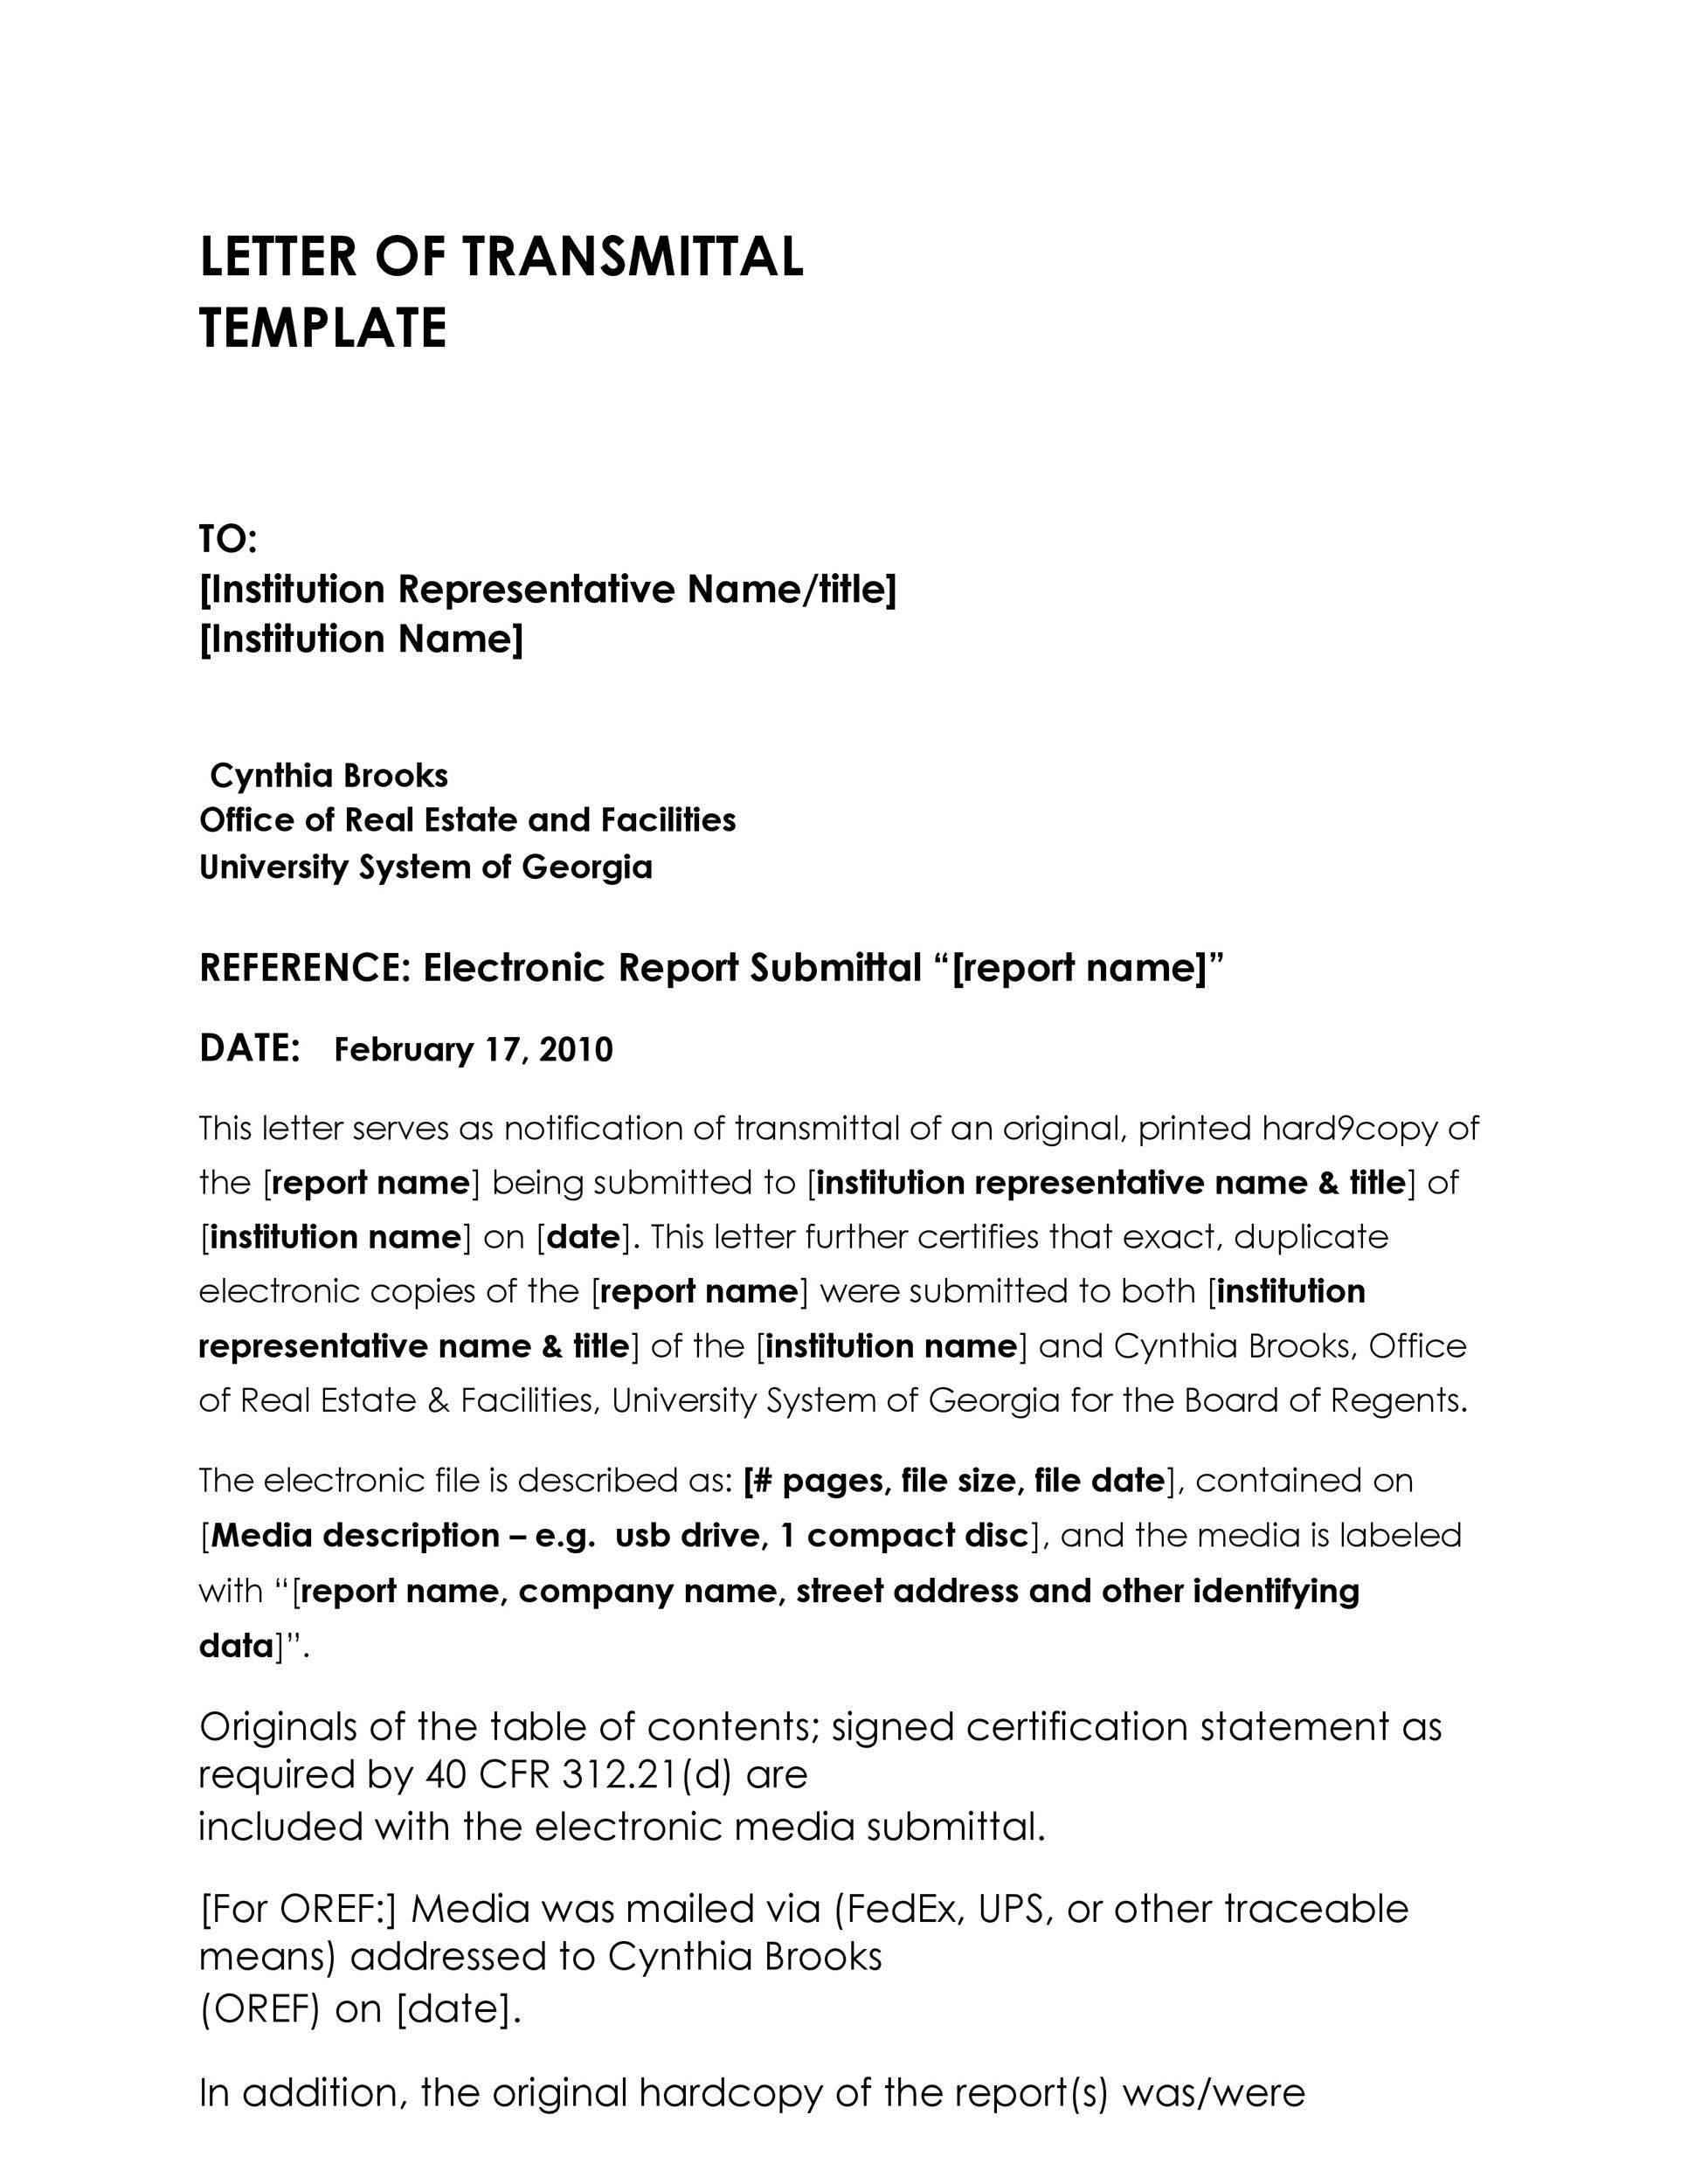 Letter of Transmittal 40 Great Examples Templates Template Lab